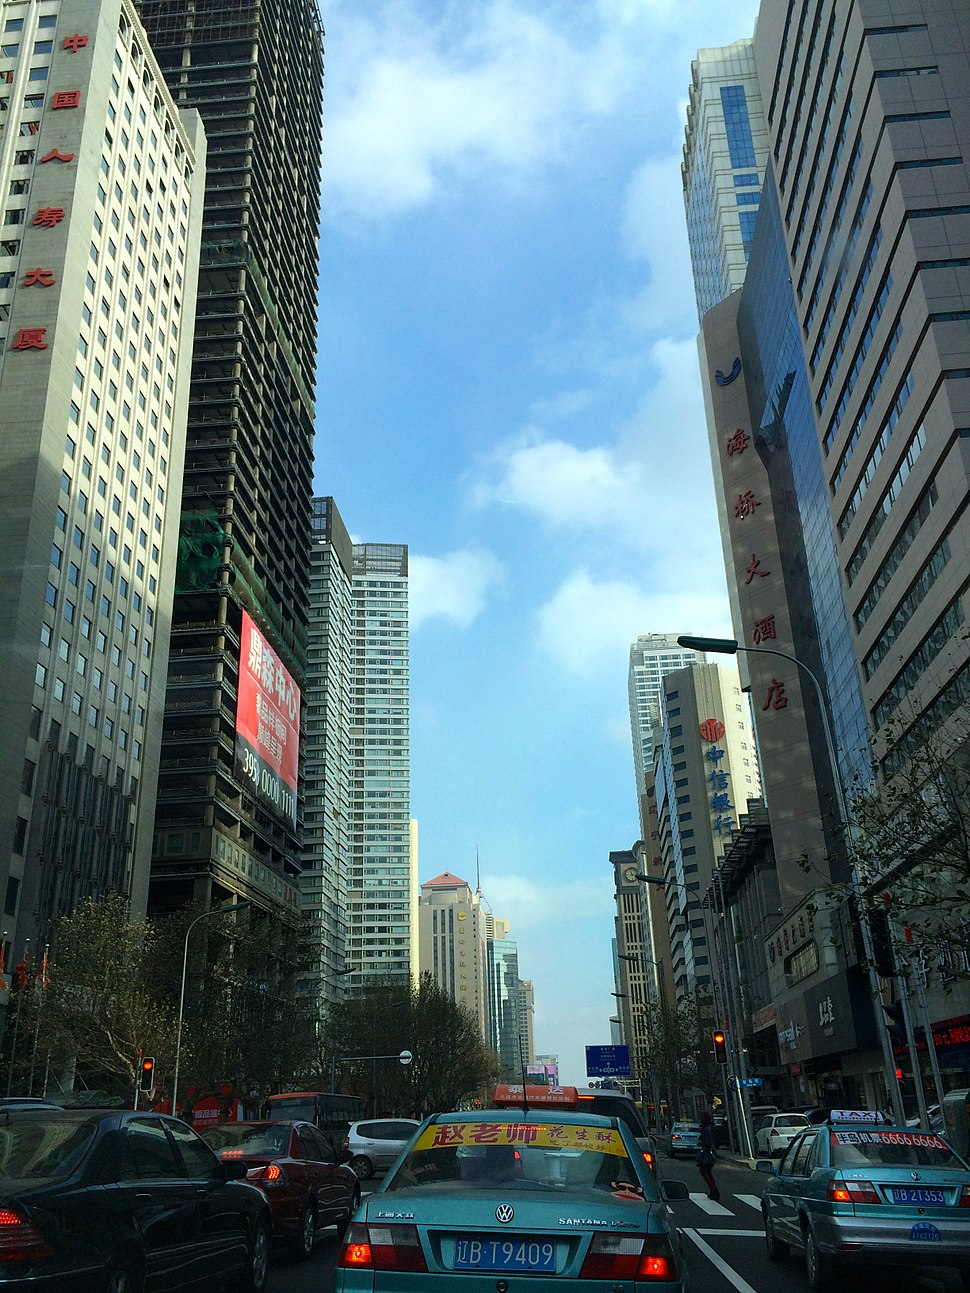 Street view on Renmin Road, Dalian